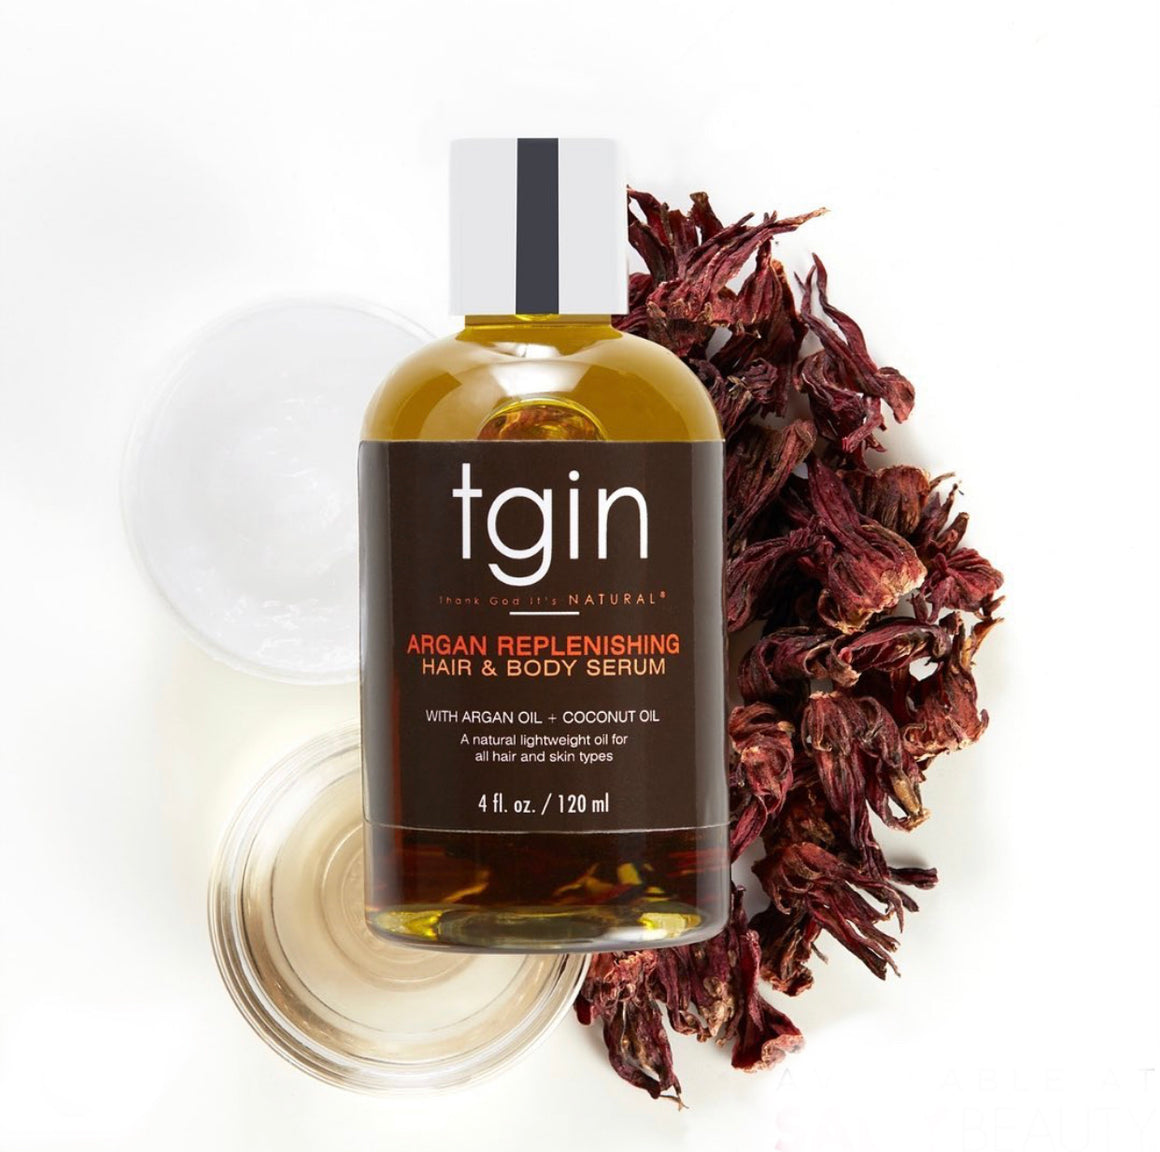 TGIN ARGAN OIL BODY HAIR SERUM